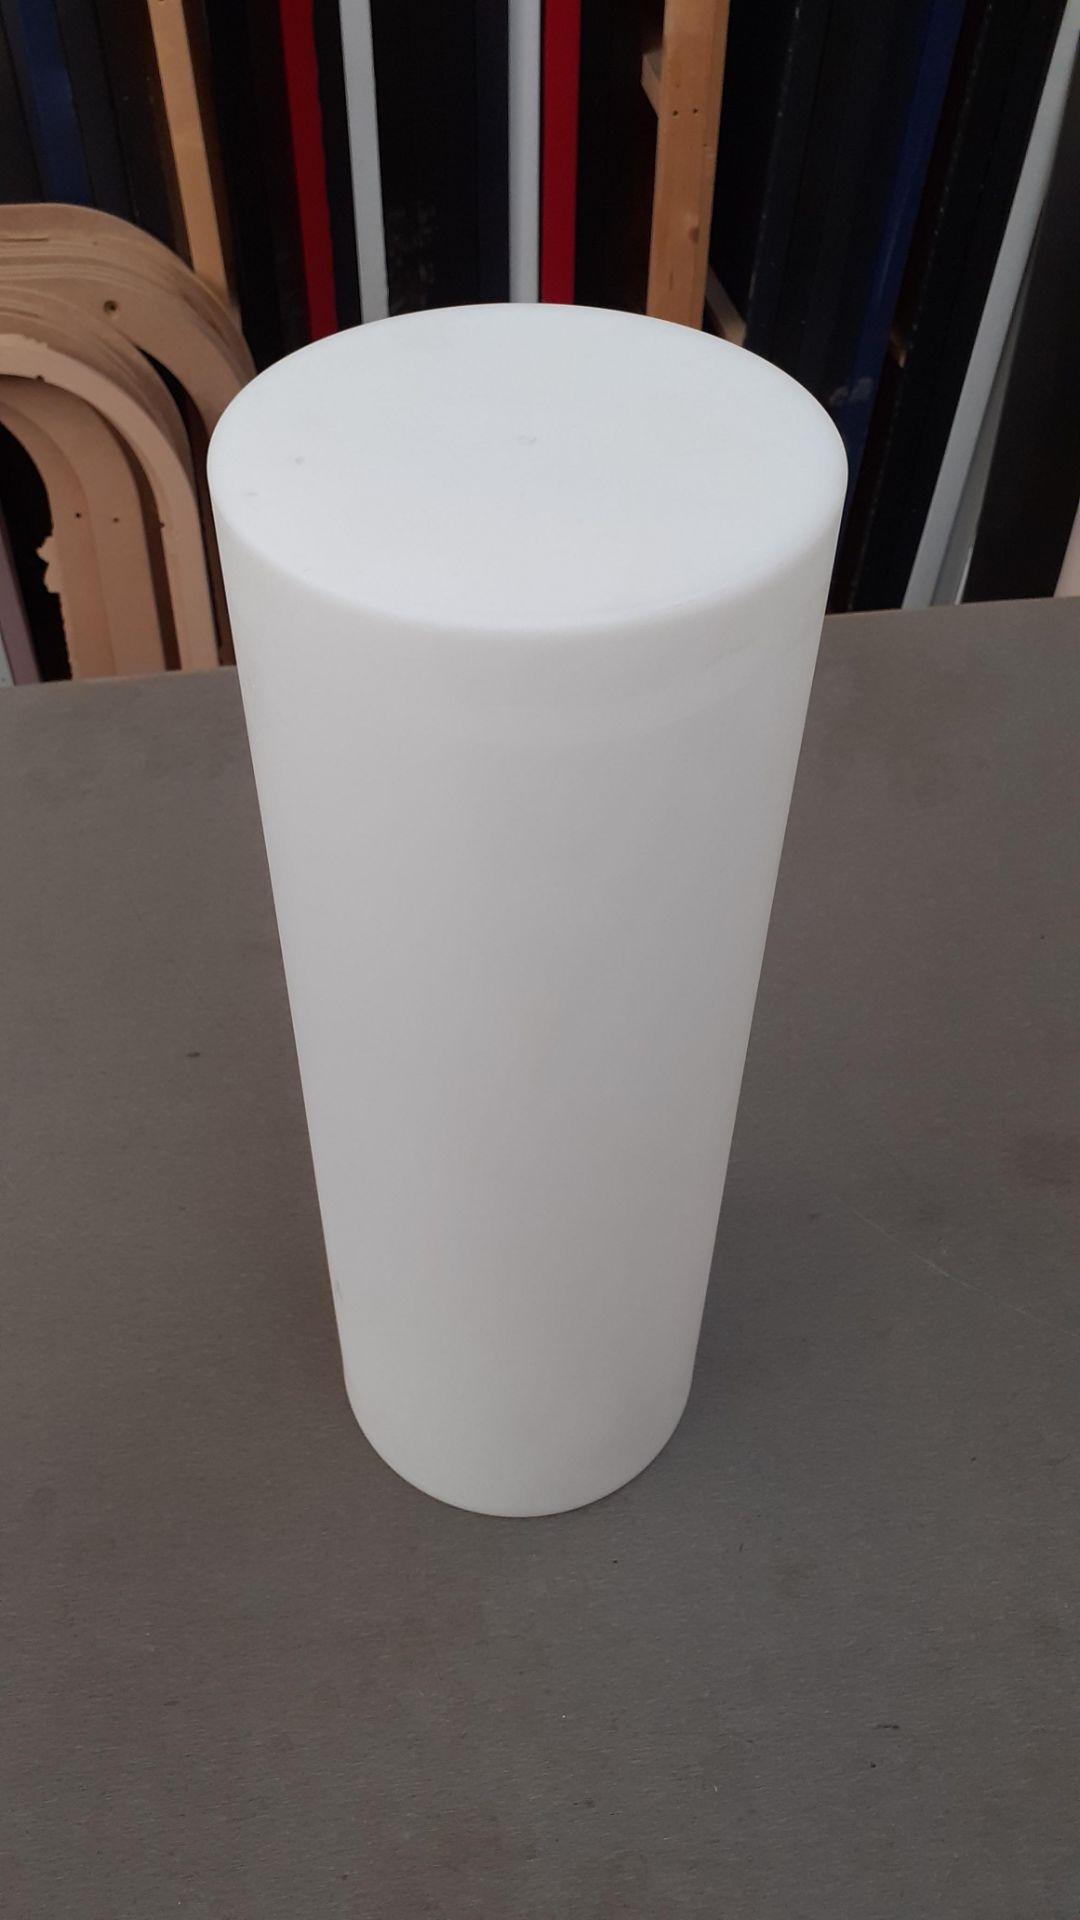 A Playlearn SLUF 70cm Light Up Cylinder with Power Supply and Remote Control (good condition, - Image 2 of 10